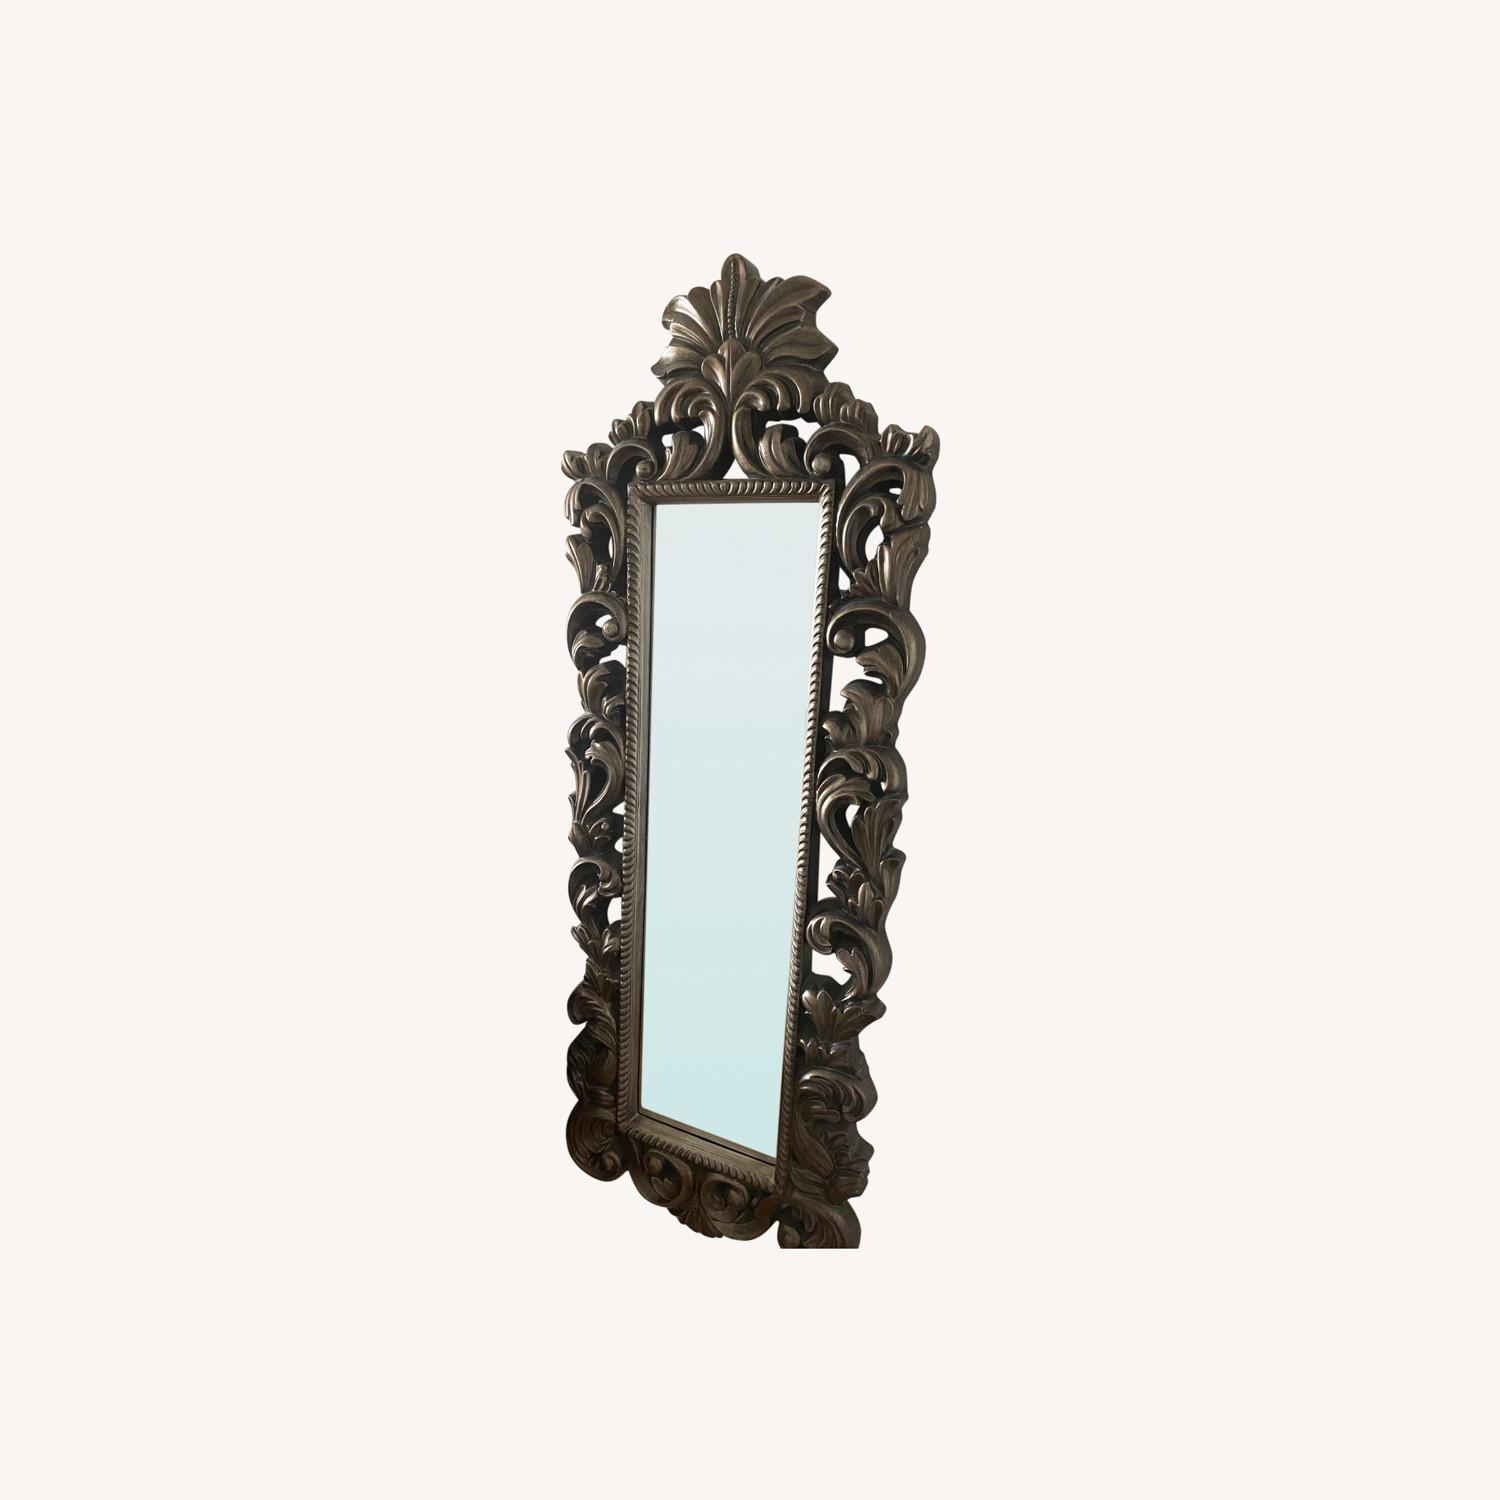 Raymour & Flanigan Wall Mirror Vintage Style - image-0